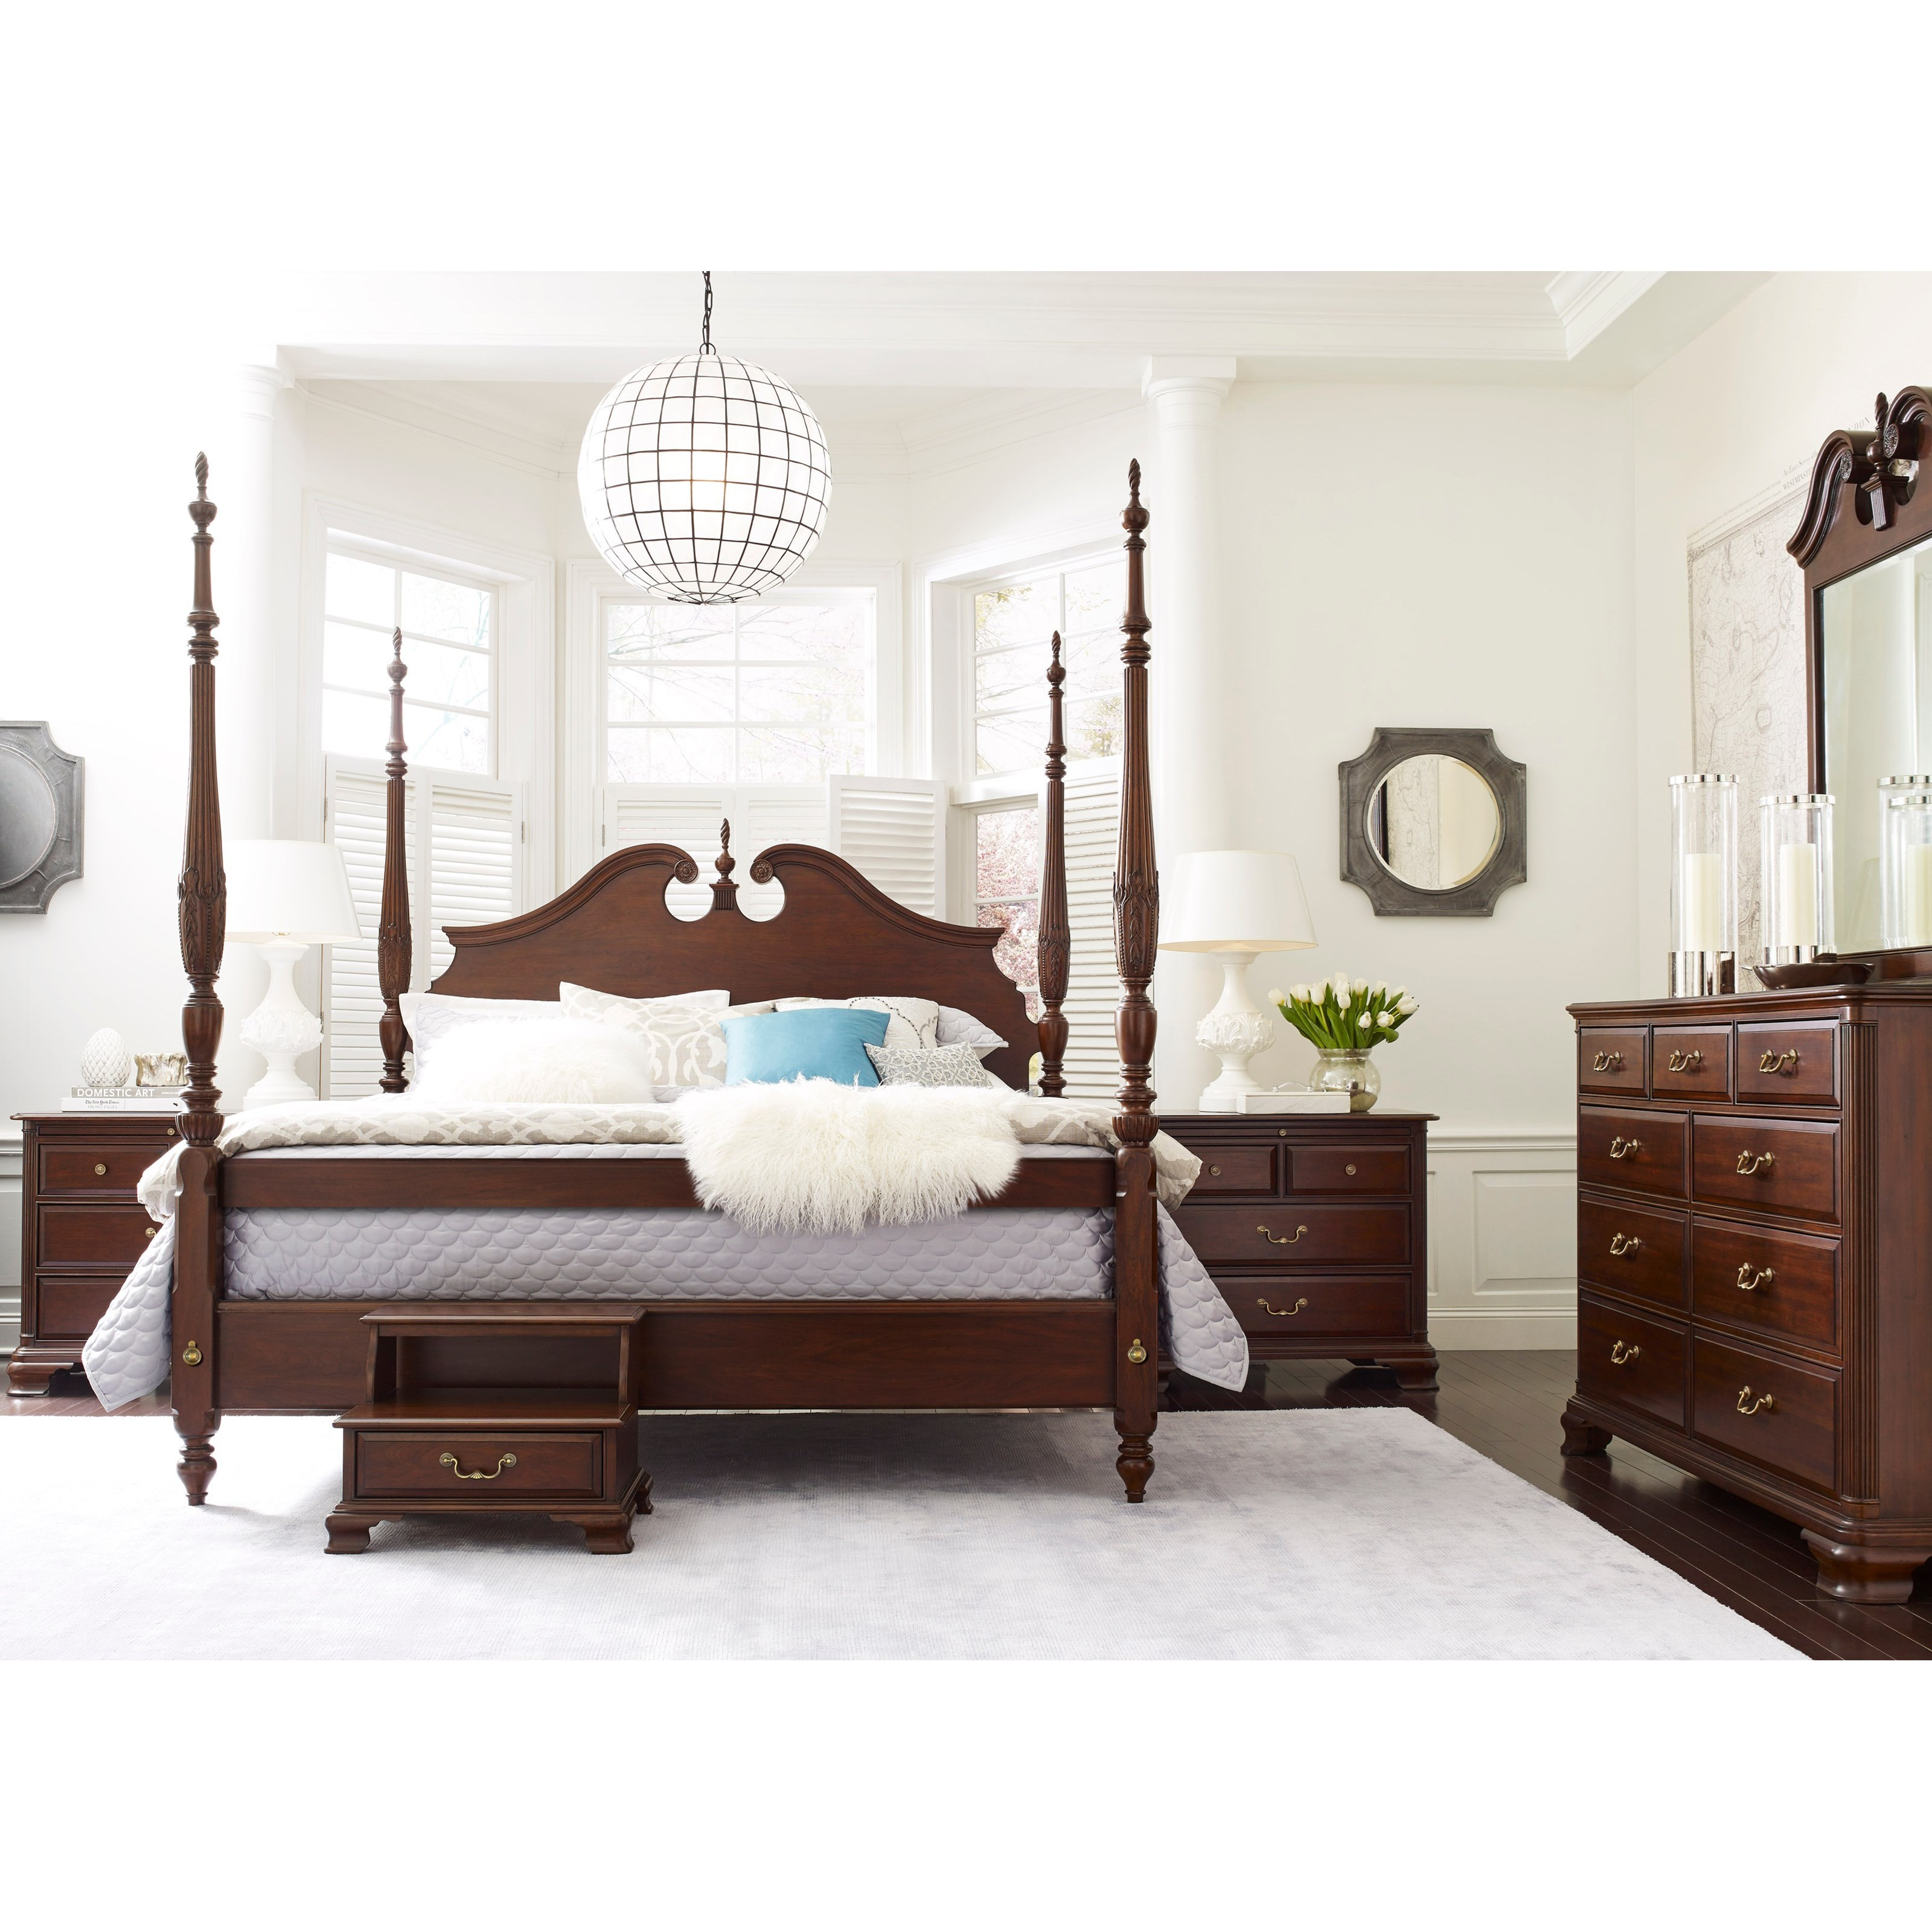 Hadleigh King Bedroom Group by Kincaid Furniture at Johnny Janosik